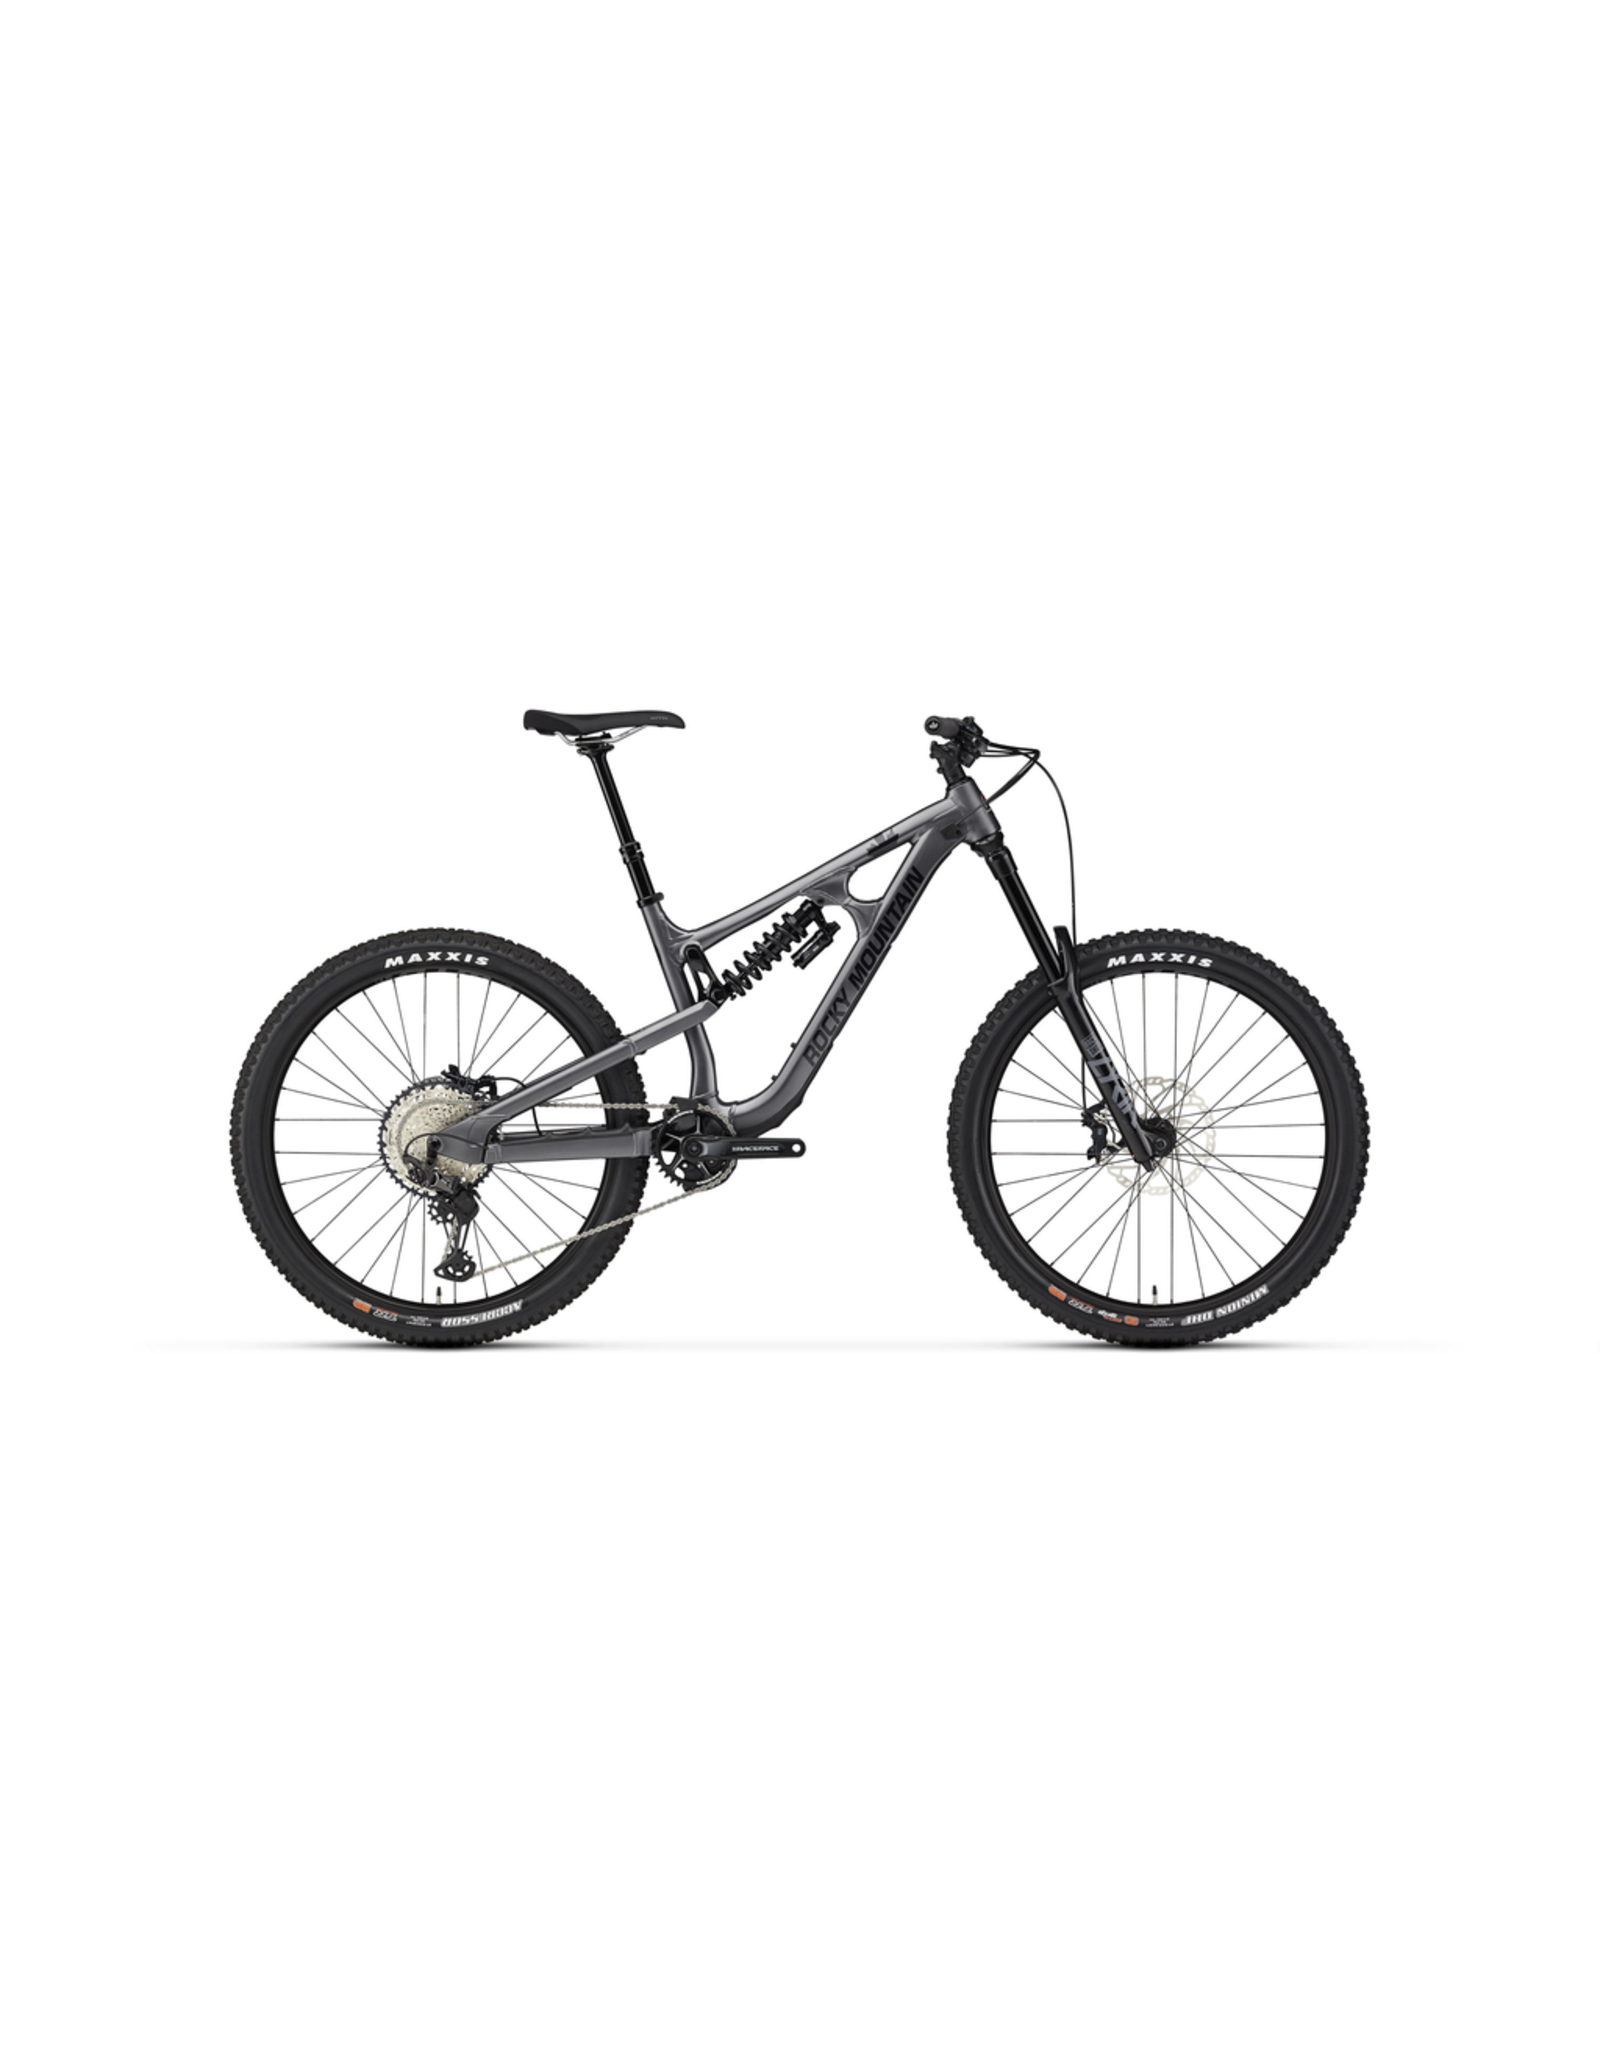 "ROCKY MOUNTAIN ROCKY MOUNTAIN '20 SLAYER A50 27.5"" GREY/BLACK (C2)"